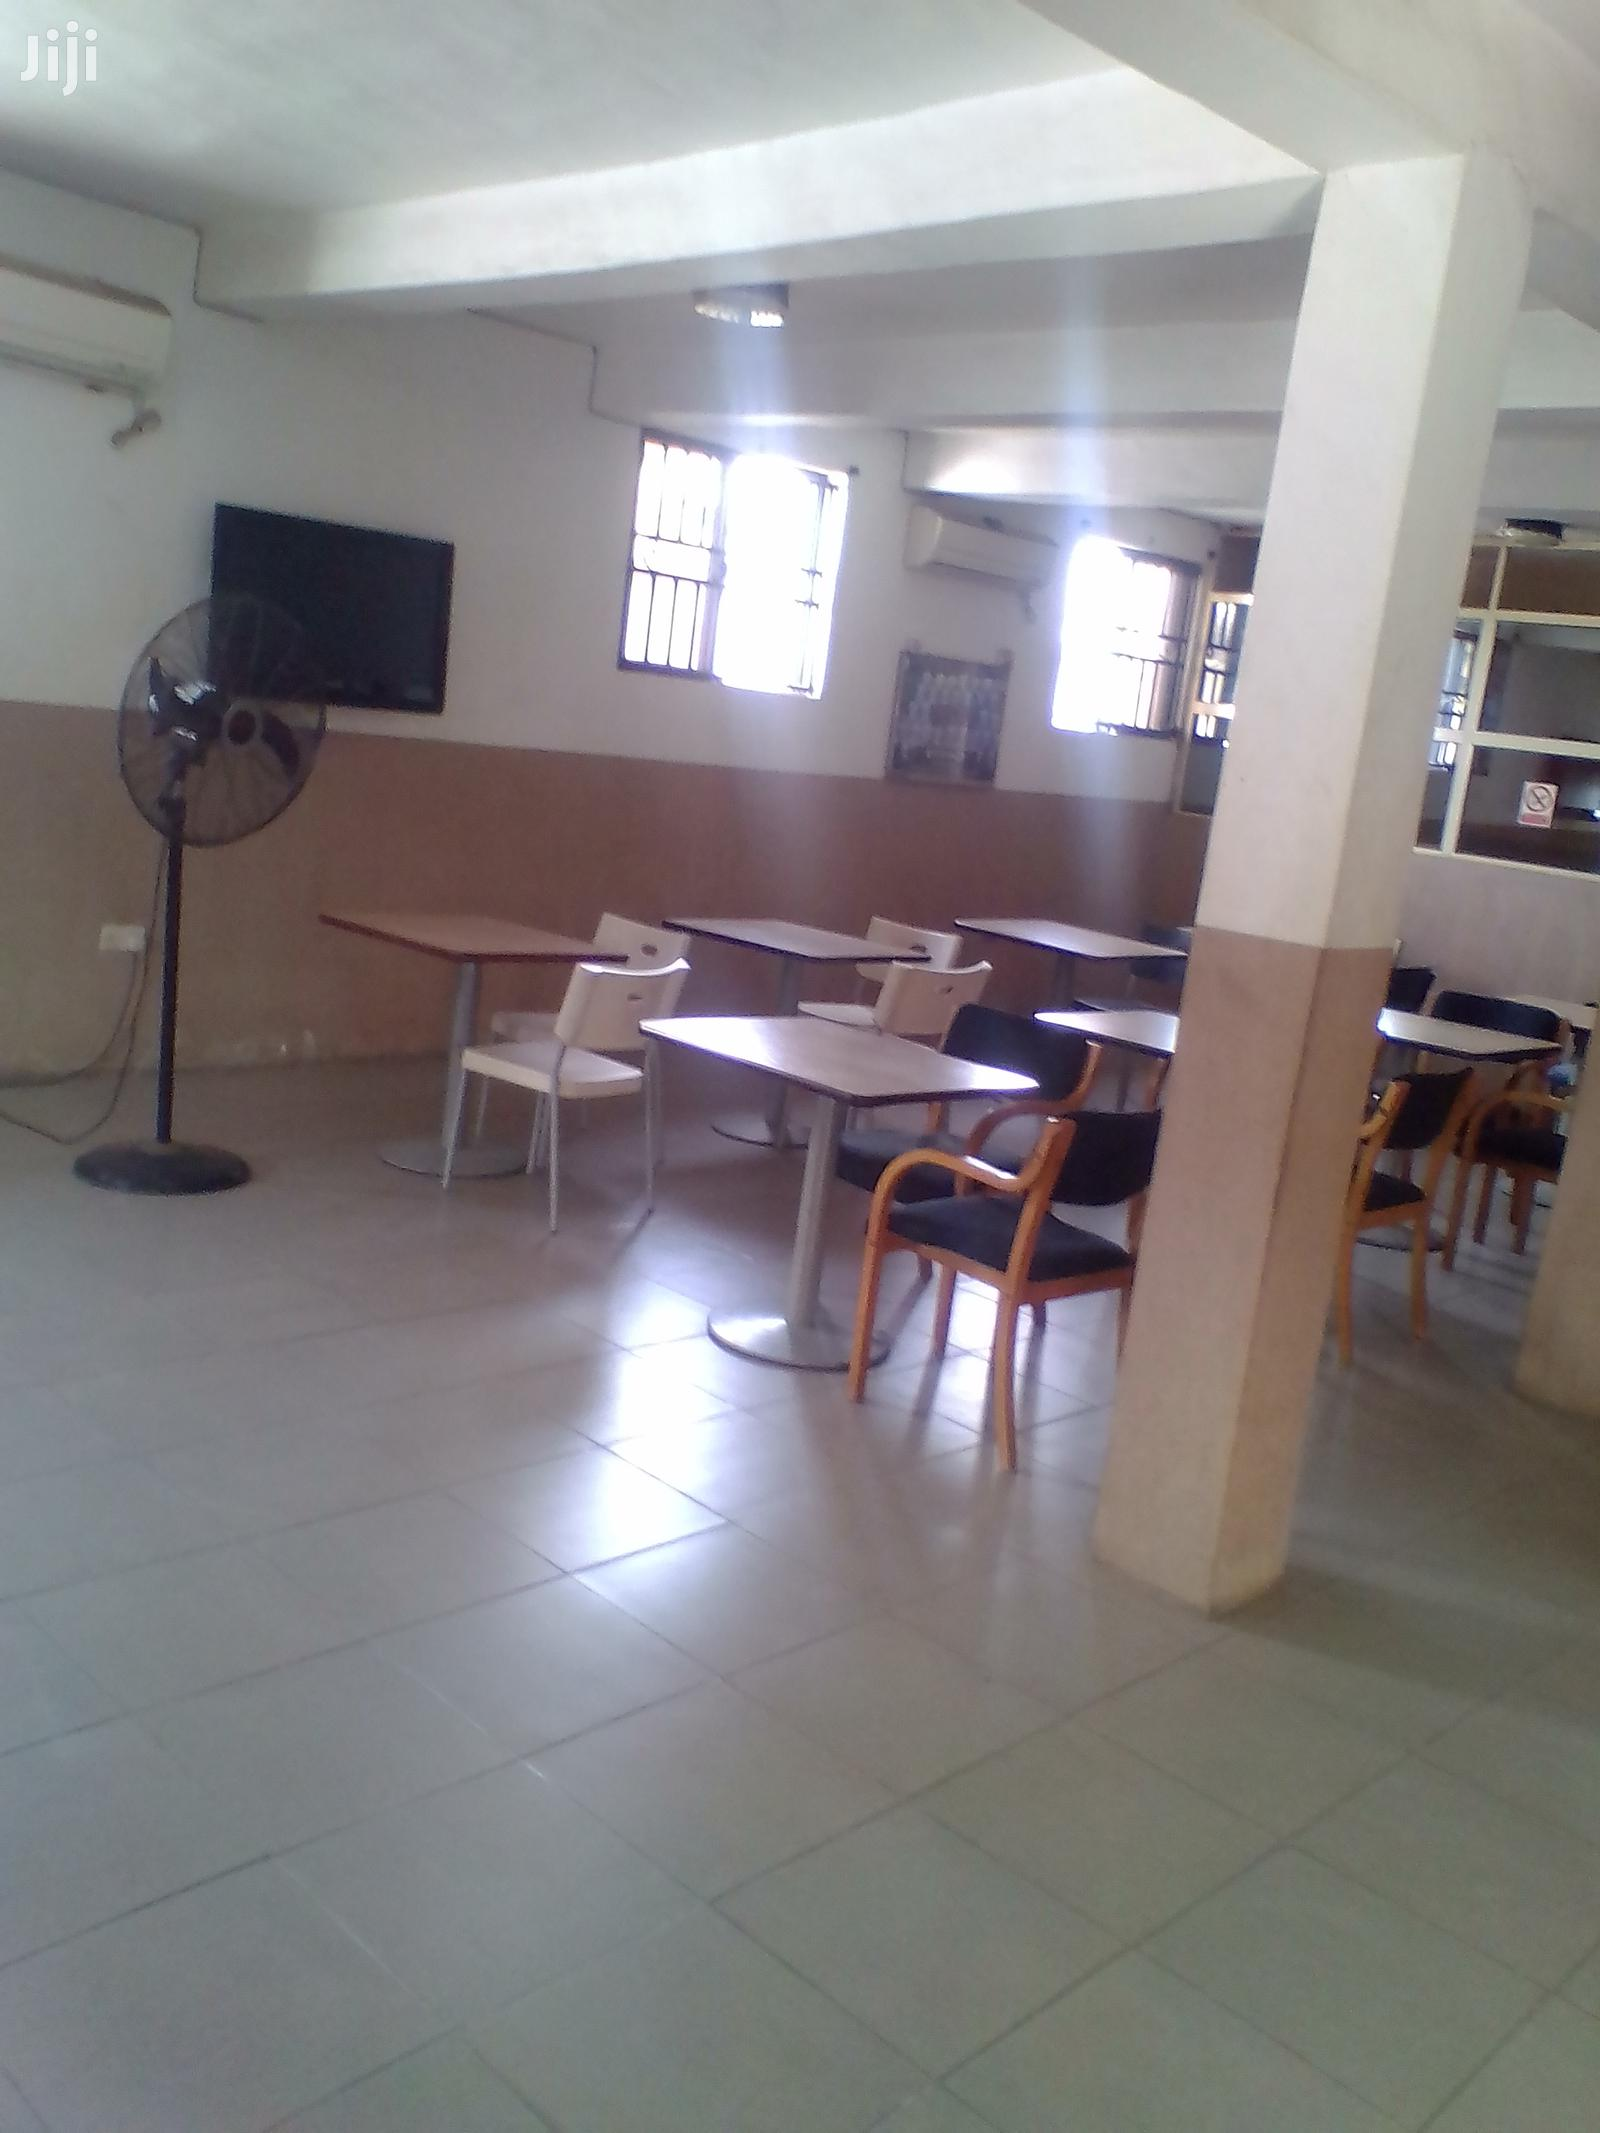 Event Centre, Hall At Ago & Amuwo Odofin For Hire/ Rent   Event centres, Venues and Workstations for sale in Isolo, Lagos State, Nigeria